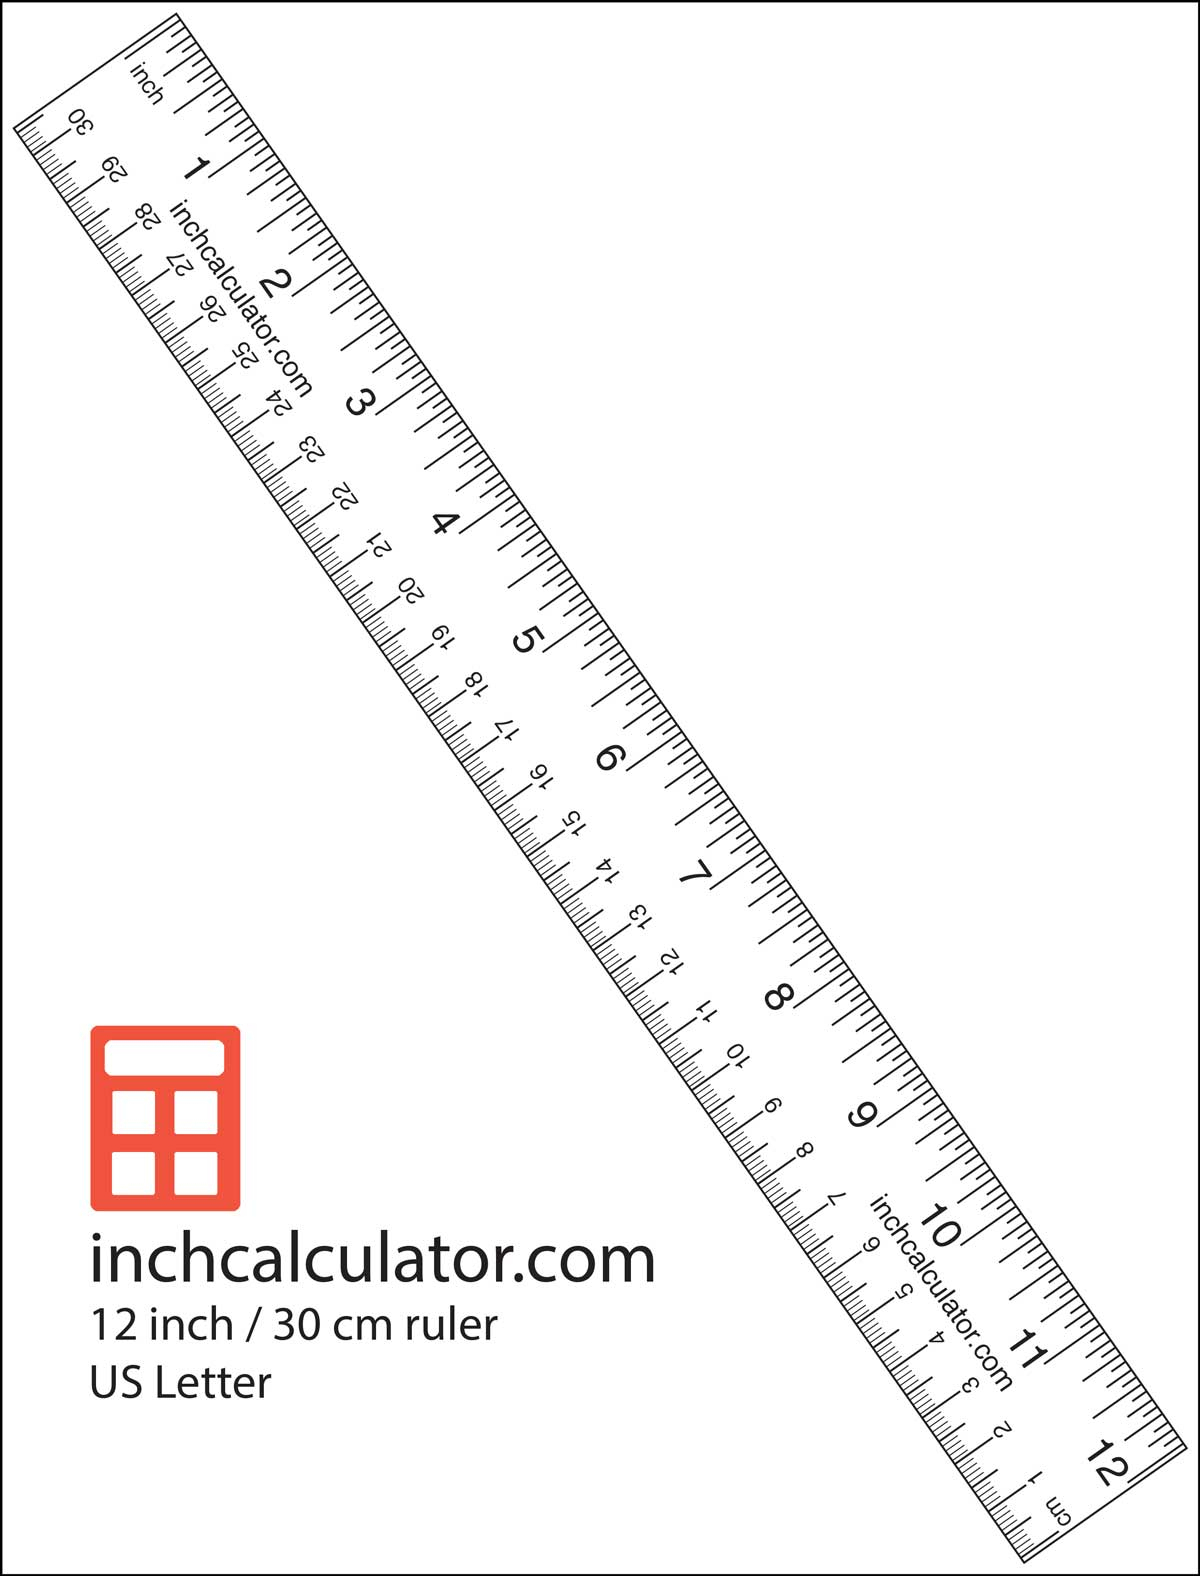 Ruler Print Out - Terete